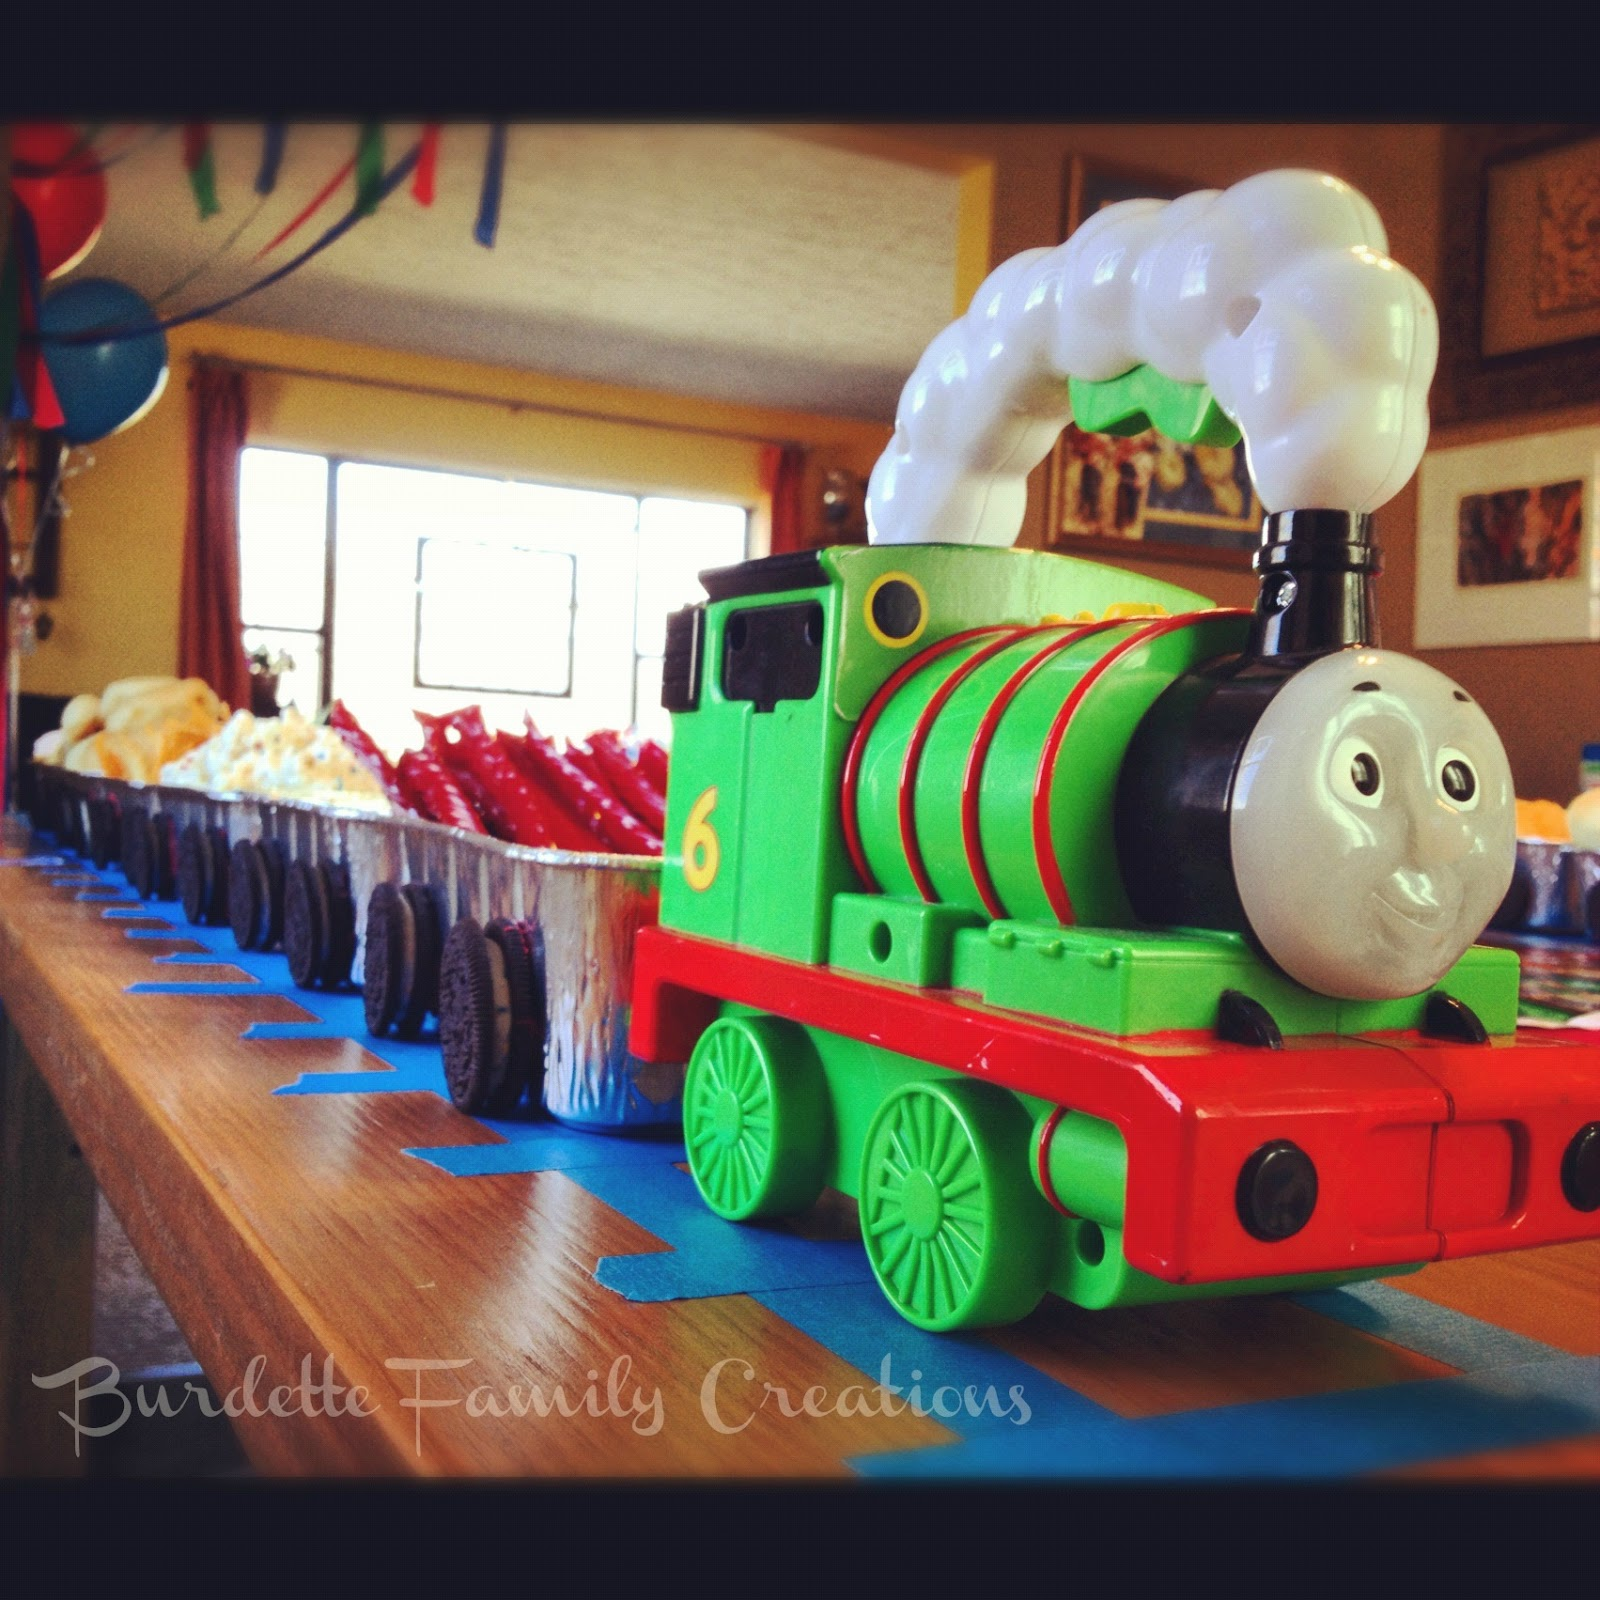 burdette family creations thomas the train birthday party. Black Bedroom Furniture Sets. Home Design Ideas